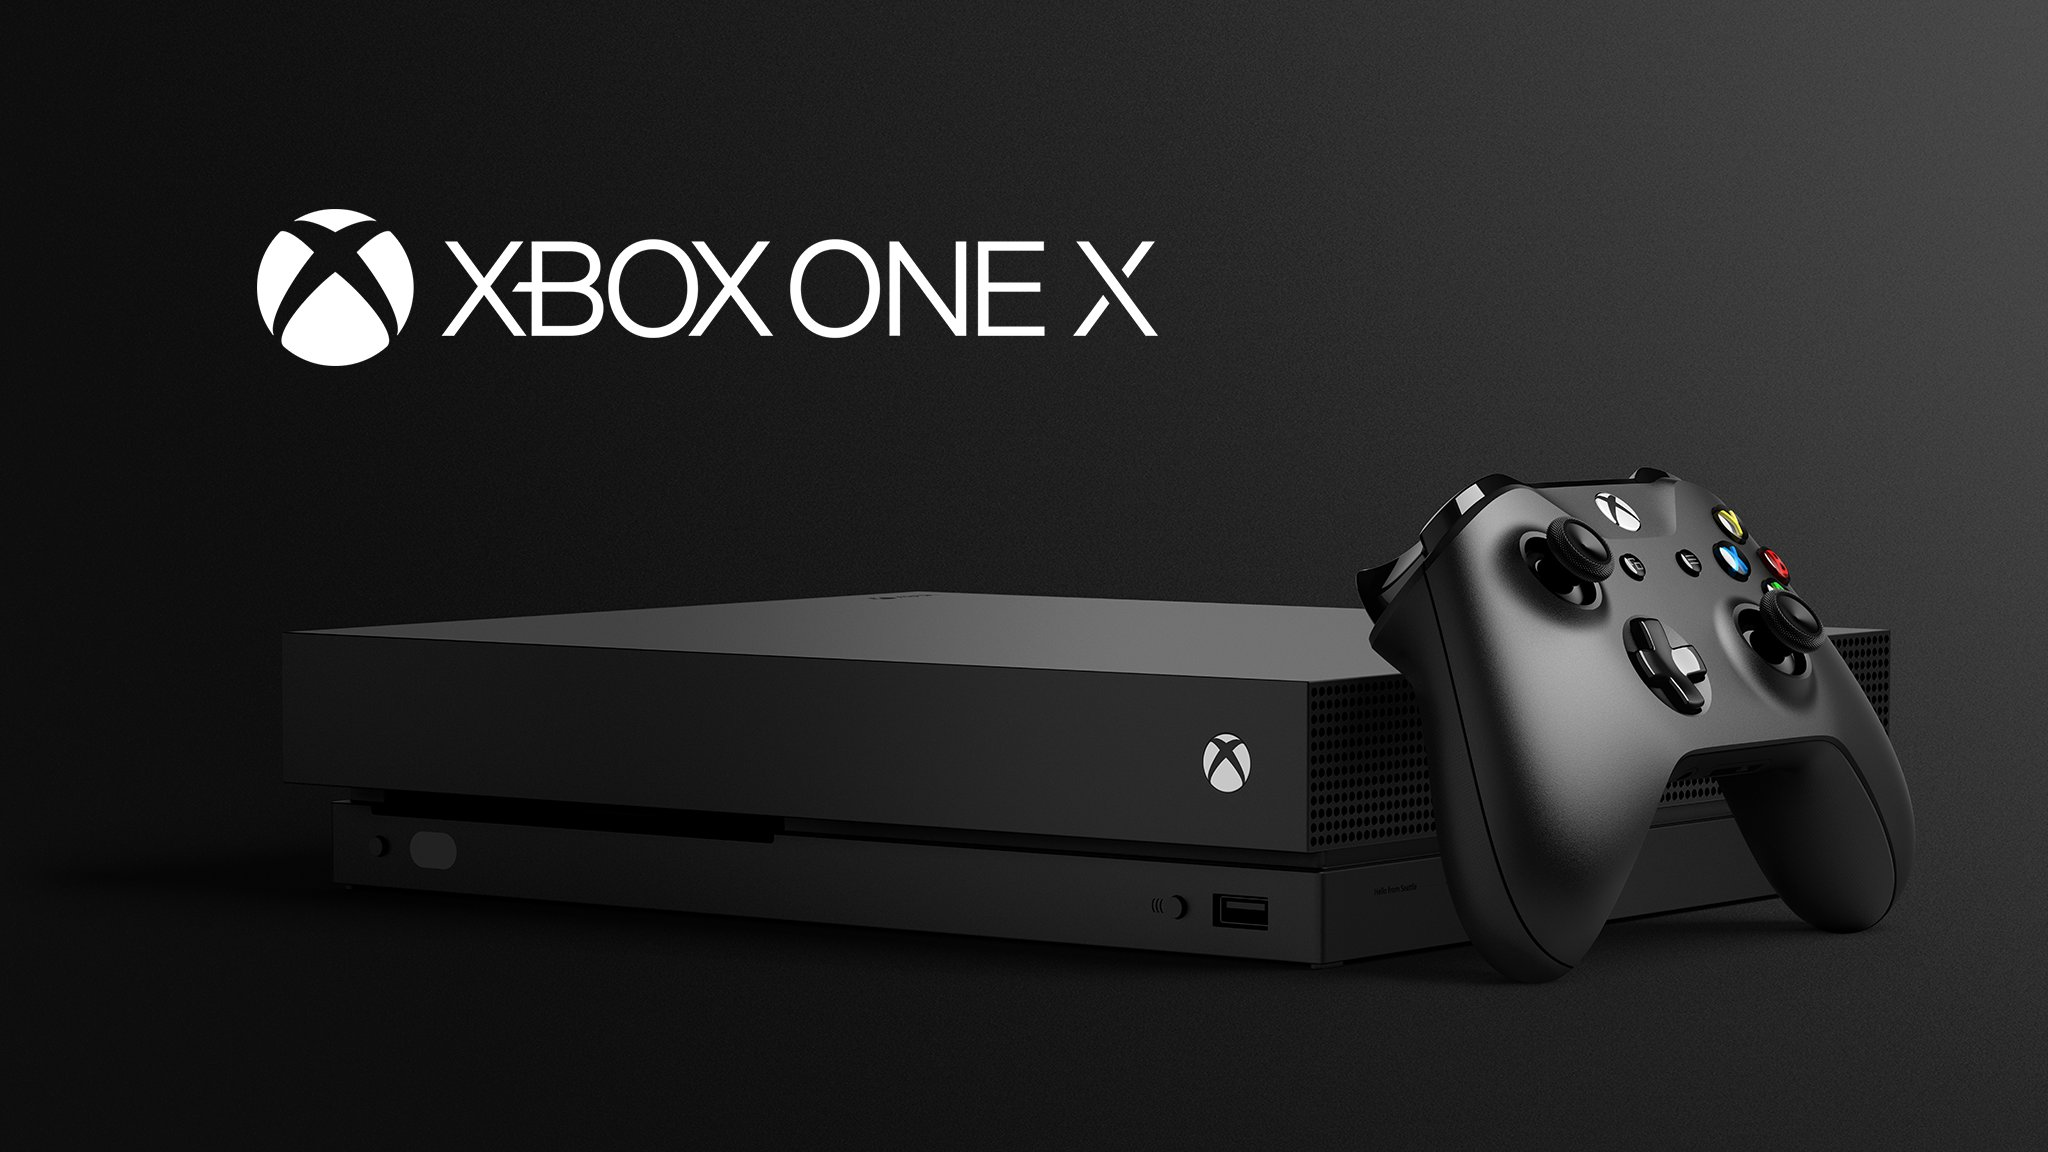 Microsoft's Xbox One X is here: features, price, release date